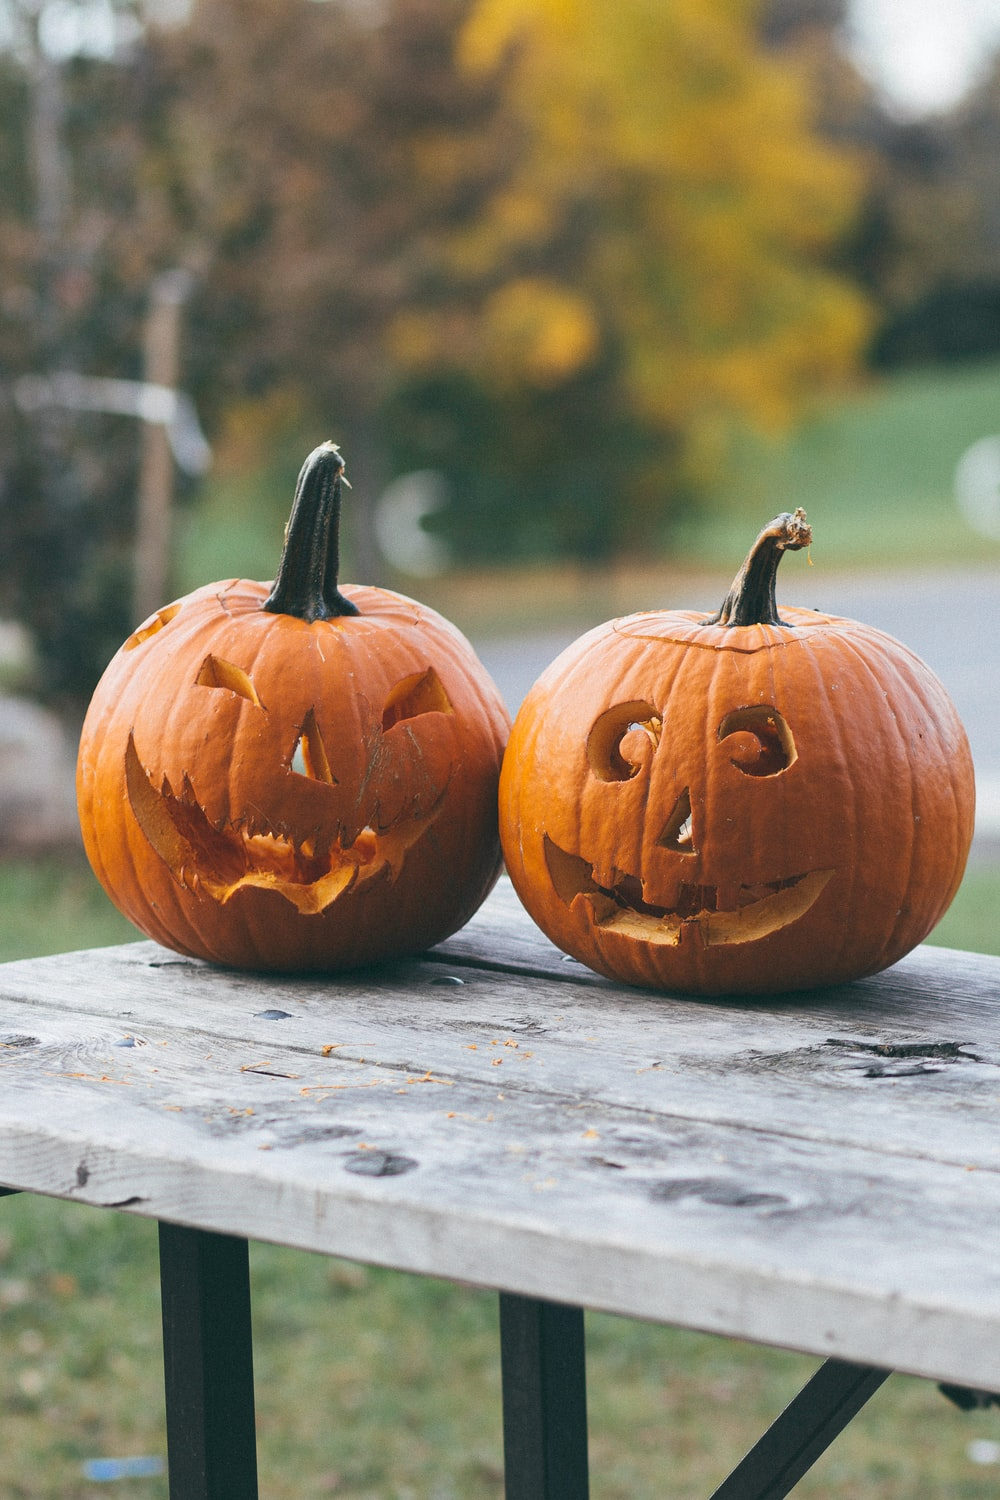 two pumpkins with faces carved on brown wooden table